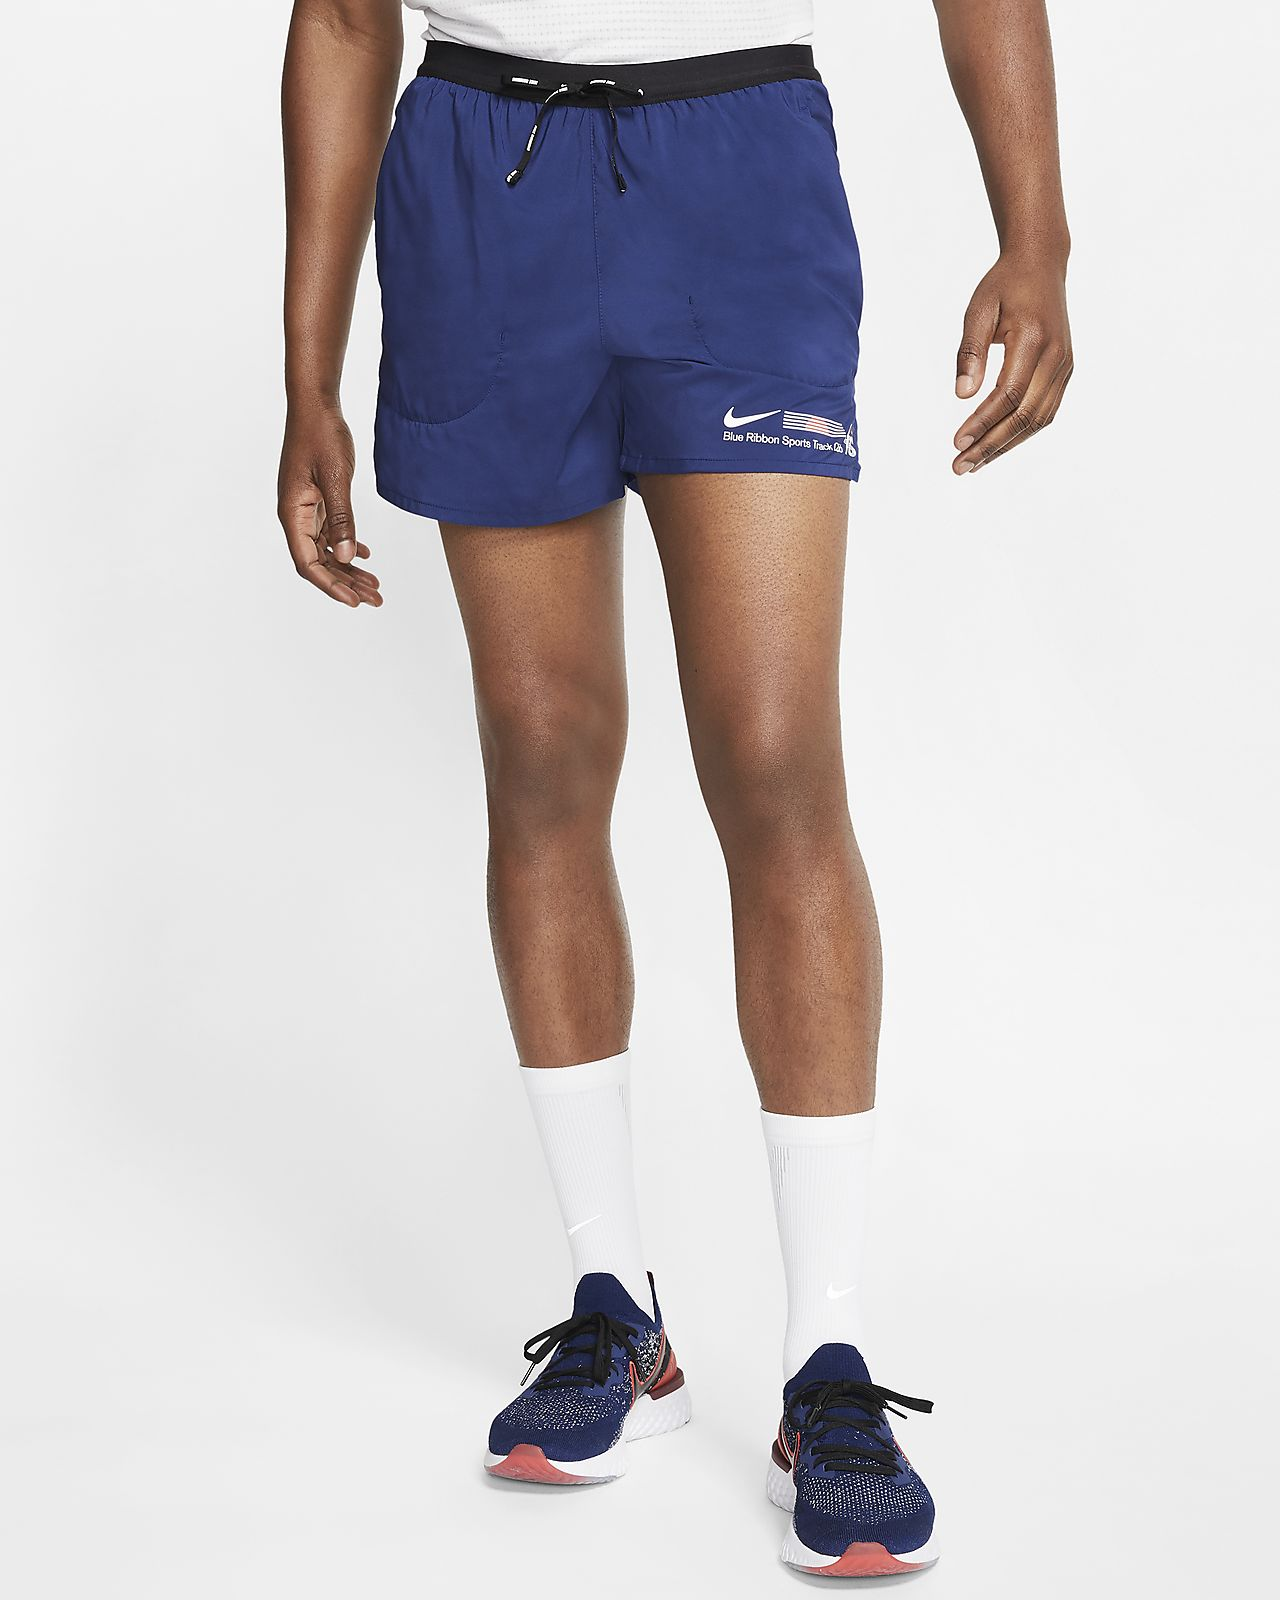 Nike Flex Stride Blue Ribbon Sports Men's 13cm (approx.) Brief-Lined Running Shorts